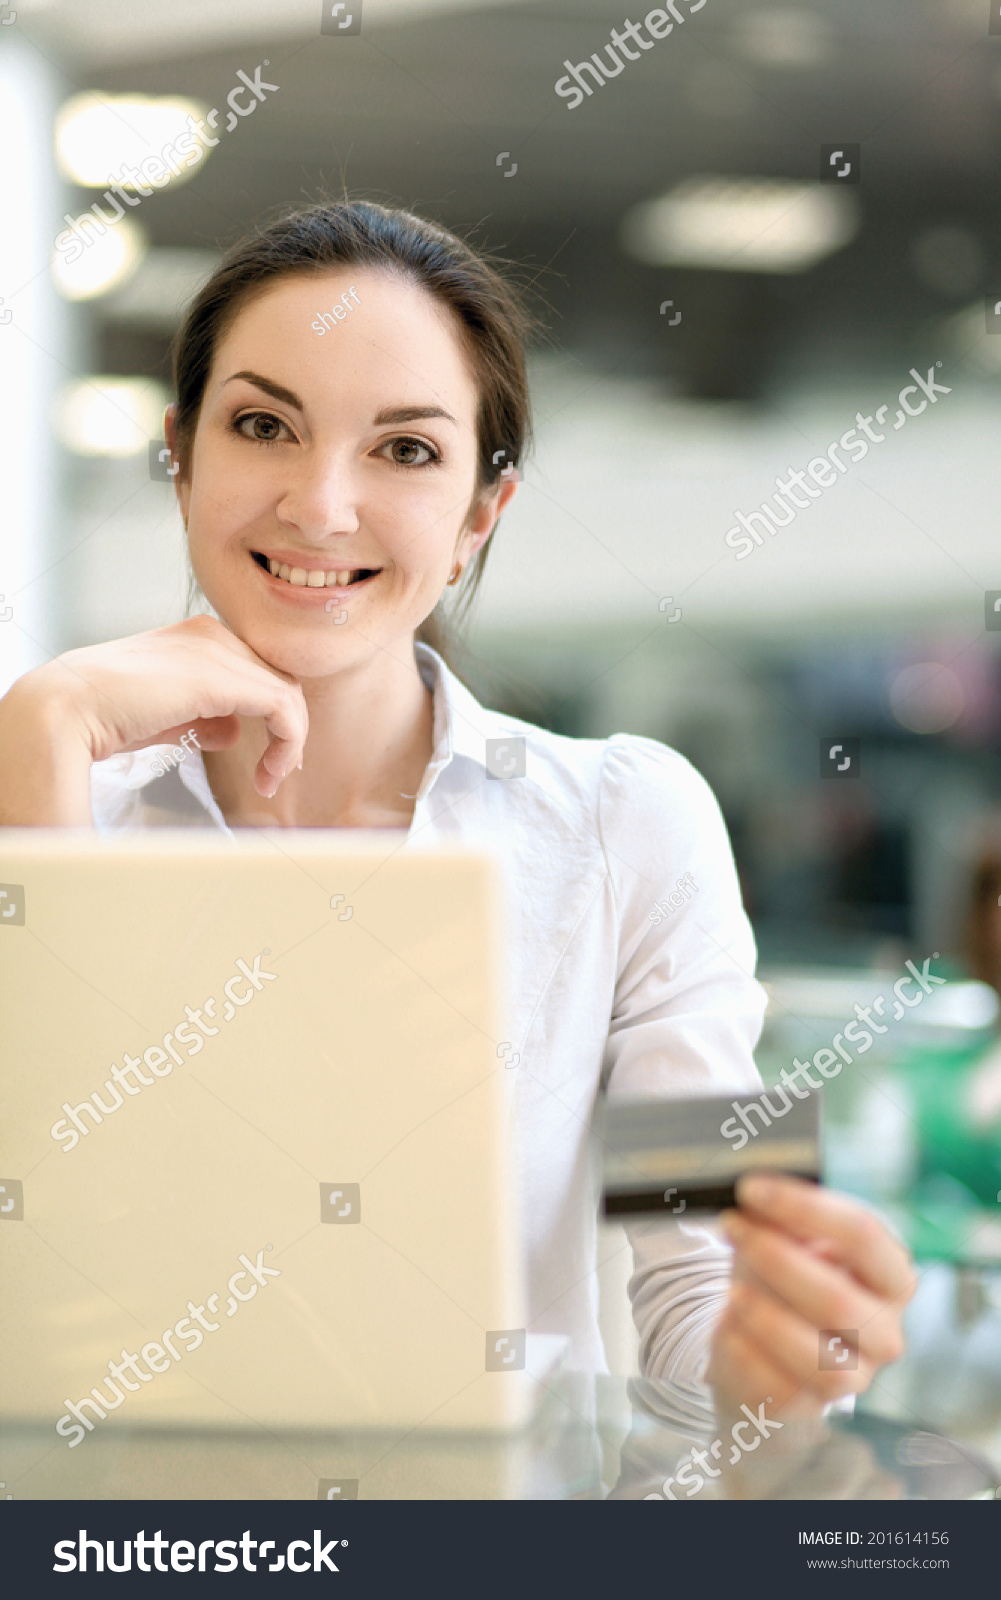 Beautiful happy woman sitting laptop stockfoto 201614156 shutterstock - Voorbeeld volwassene kamer ...